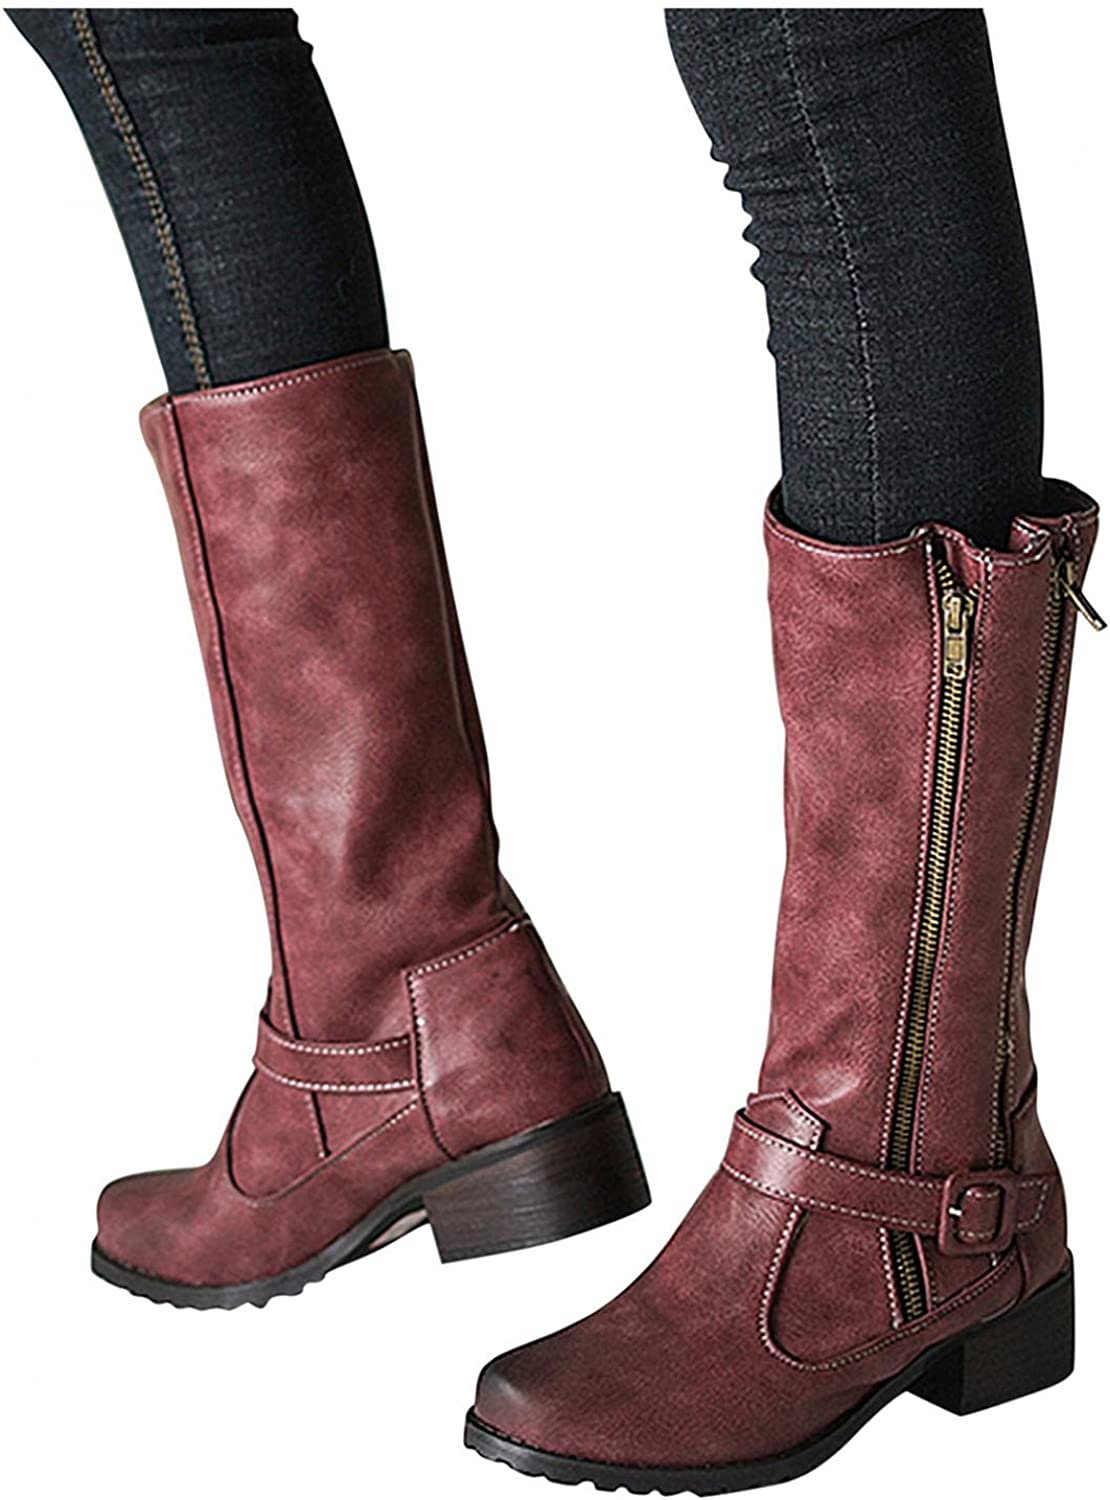 Hbeylia Boots For Women Vintage Leather Steel Toe Chunky Block Mid Heels Mid Calf Combat Boots With Side Double Zipper Retro Fashion Casual Motorcycle Riding Tall Boots Winter Shoes For Ladies